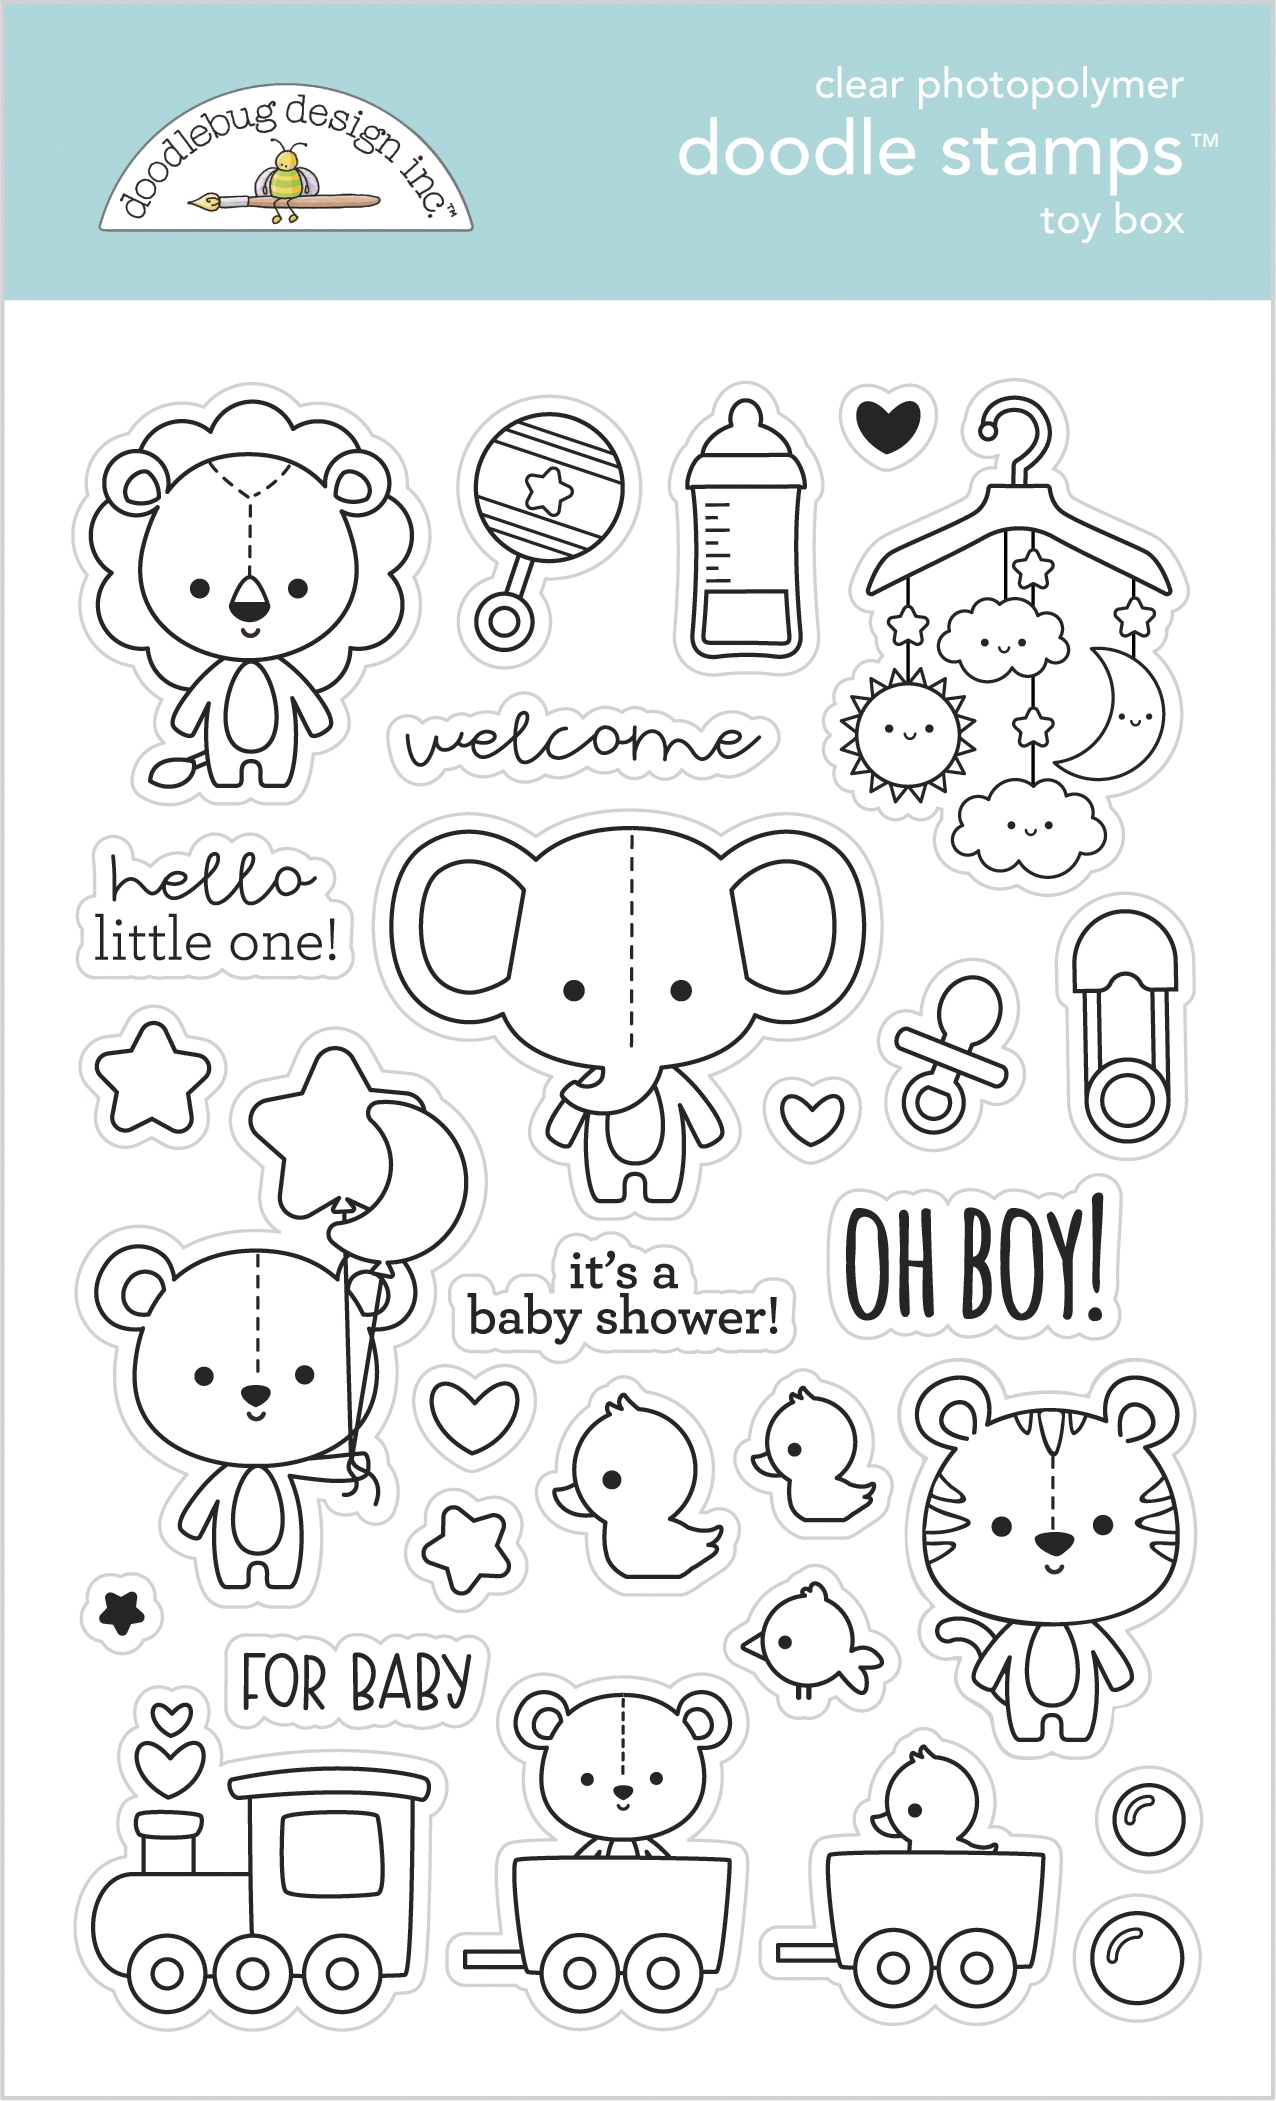 Doodlebug Clear Doodle Stamps-Toy Box, Special Delivery